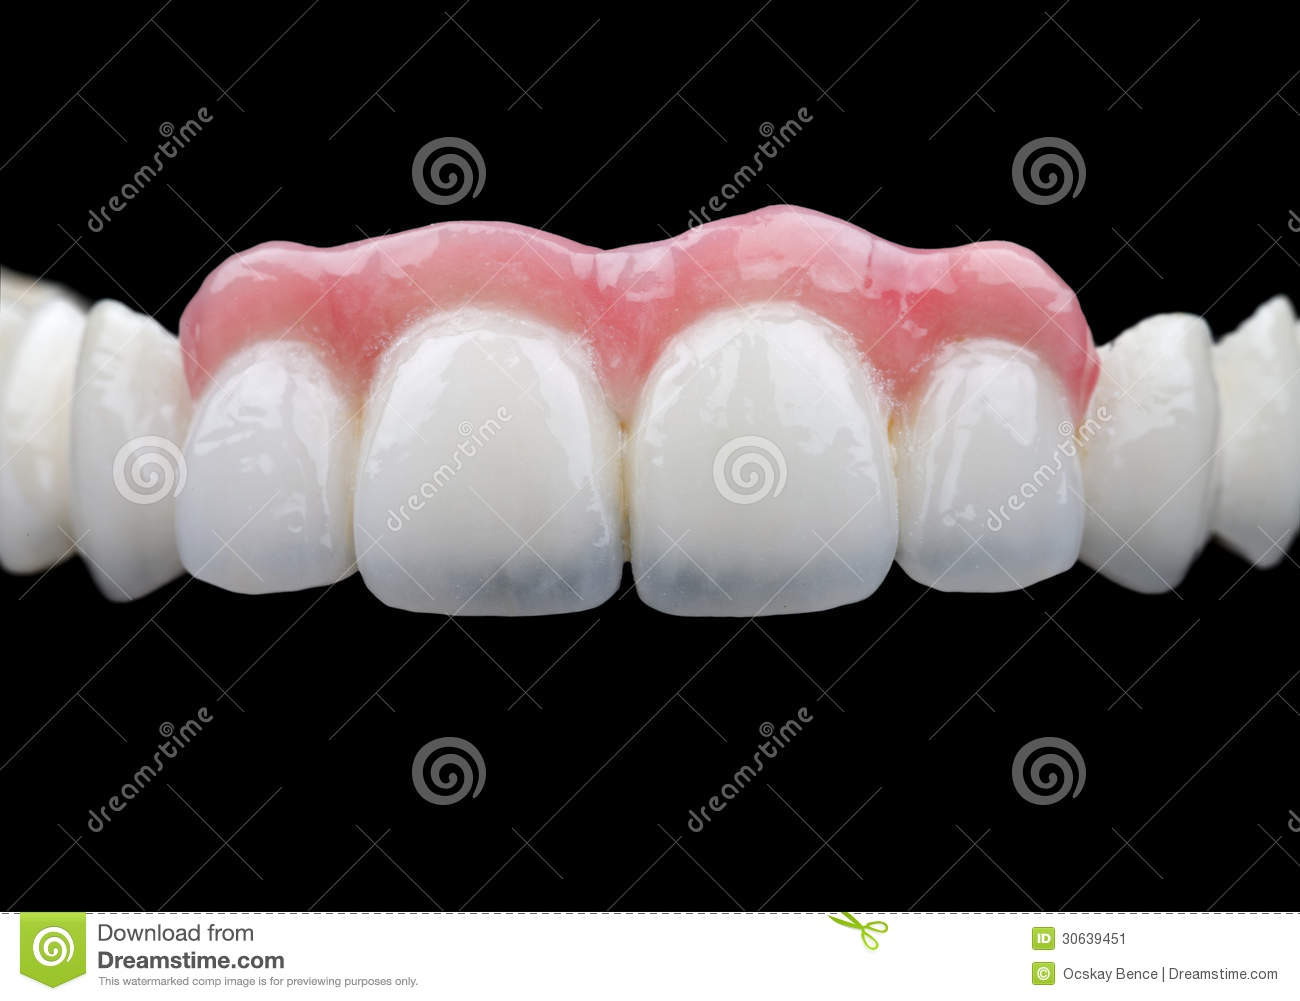 Dents En Porcelaine Dents De Porcelaine Image Stock Image Du Closeup Conservateur